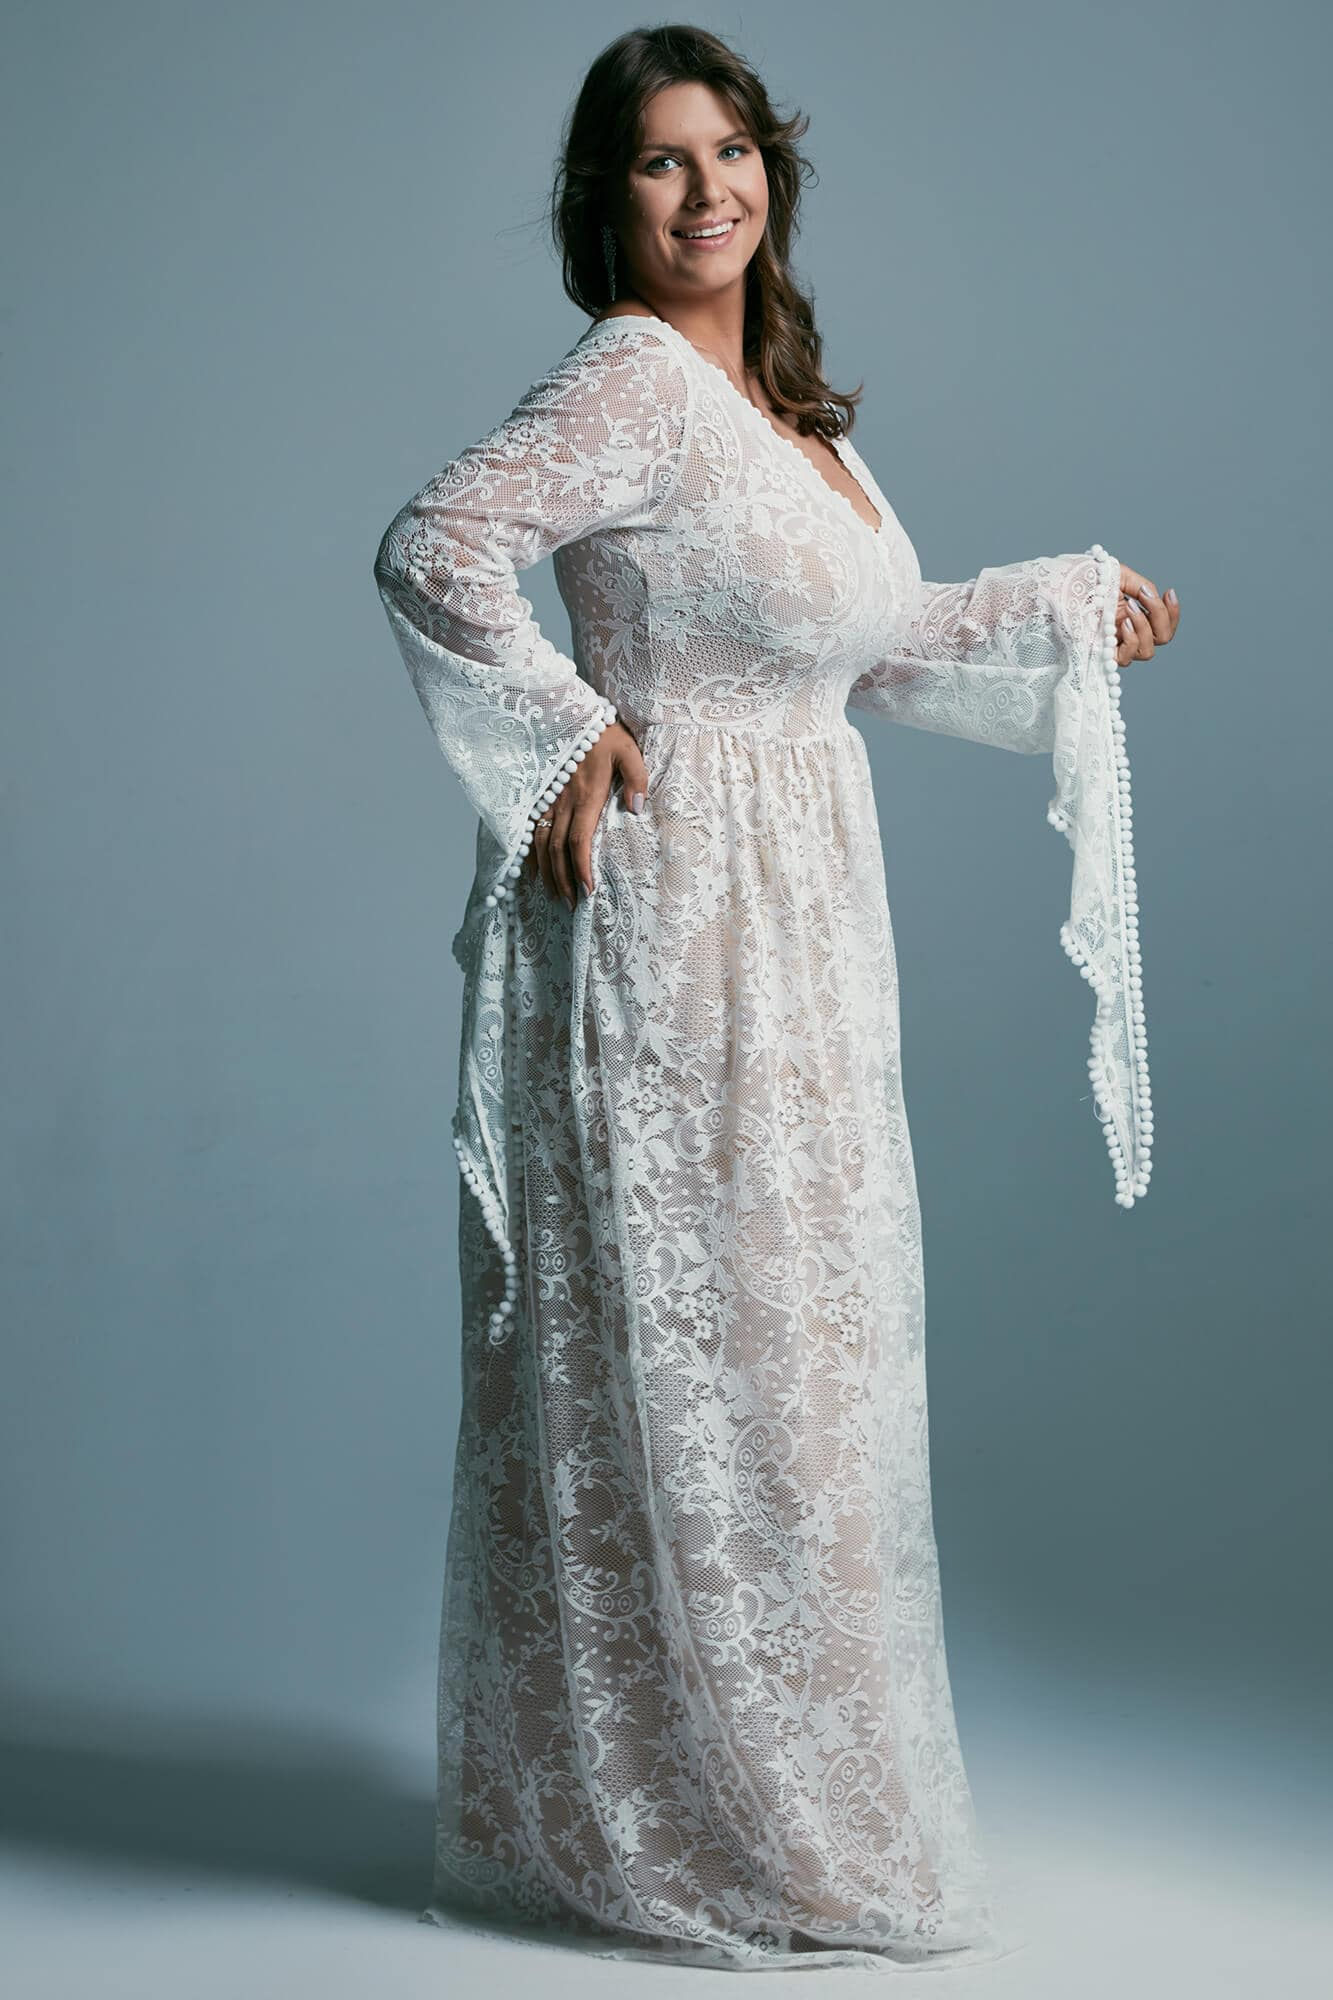 Fairytale plus size wedding dress with the appearance of a fairy with long sleeves Porto 17 plus size